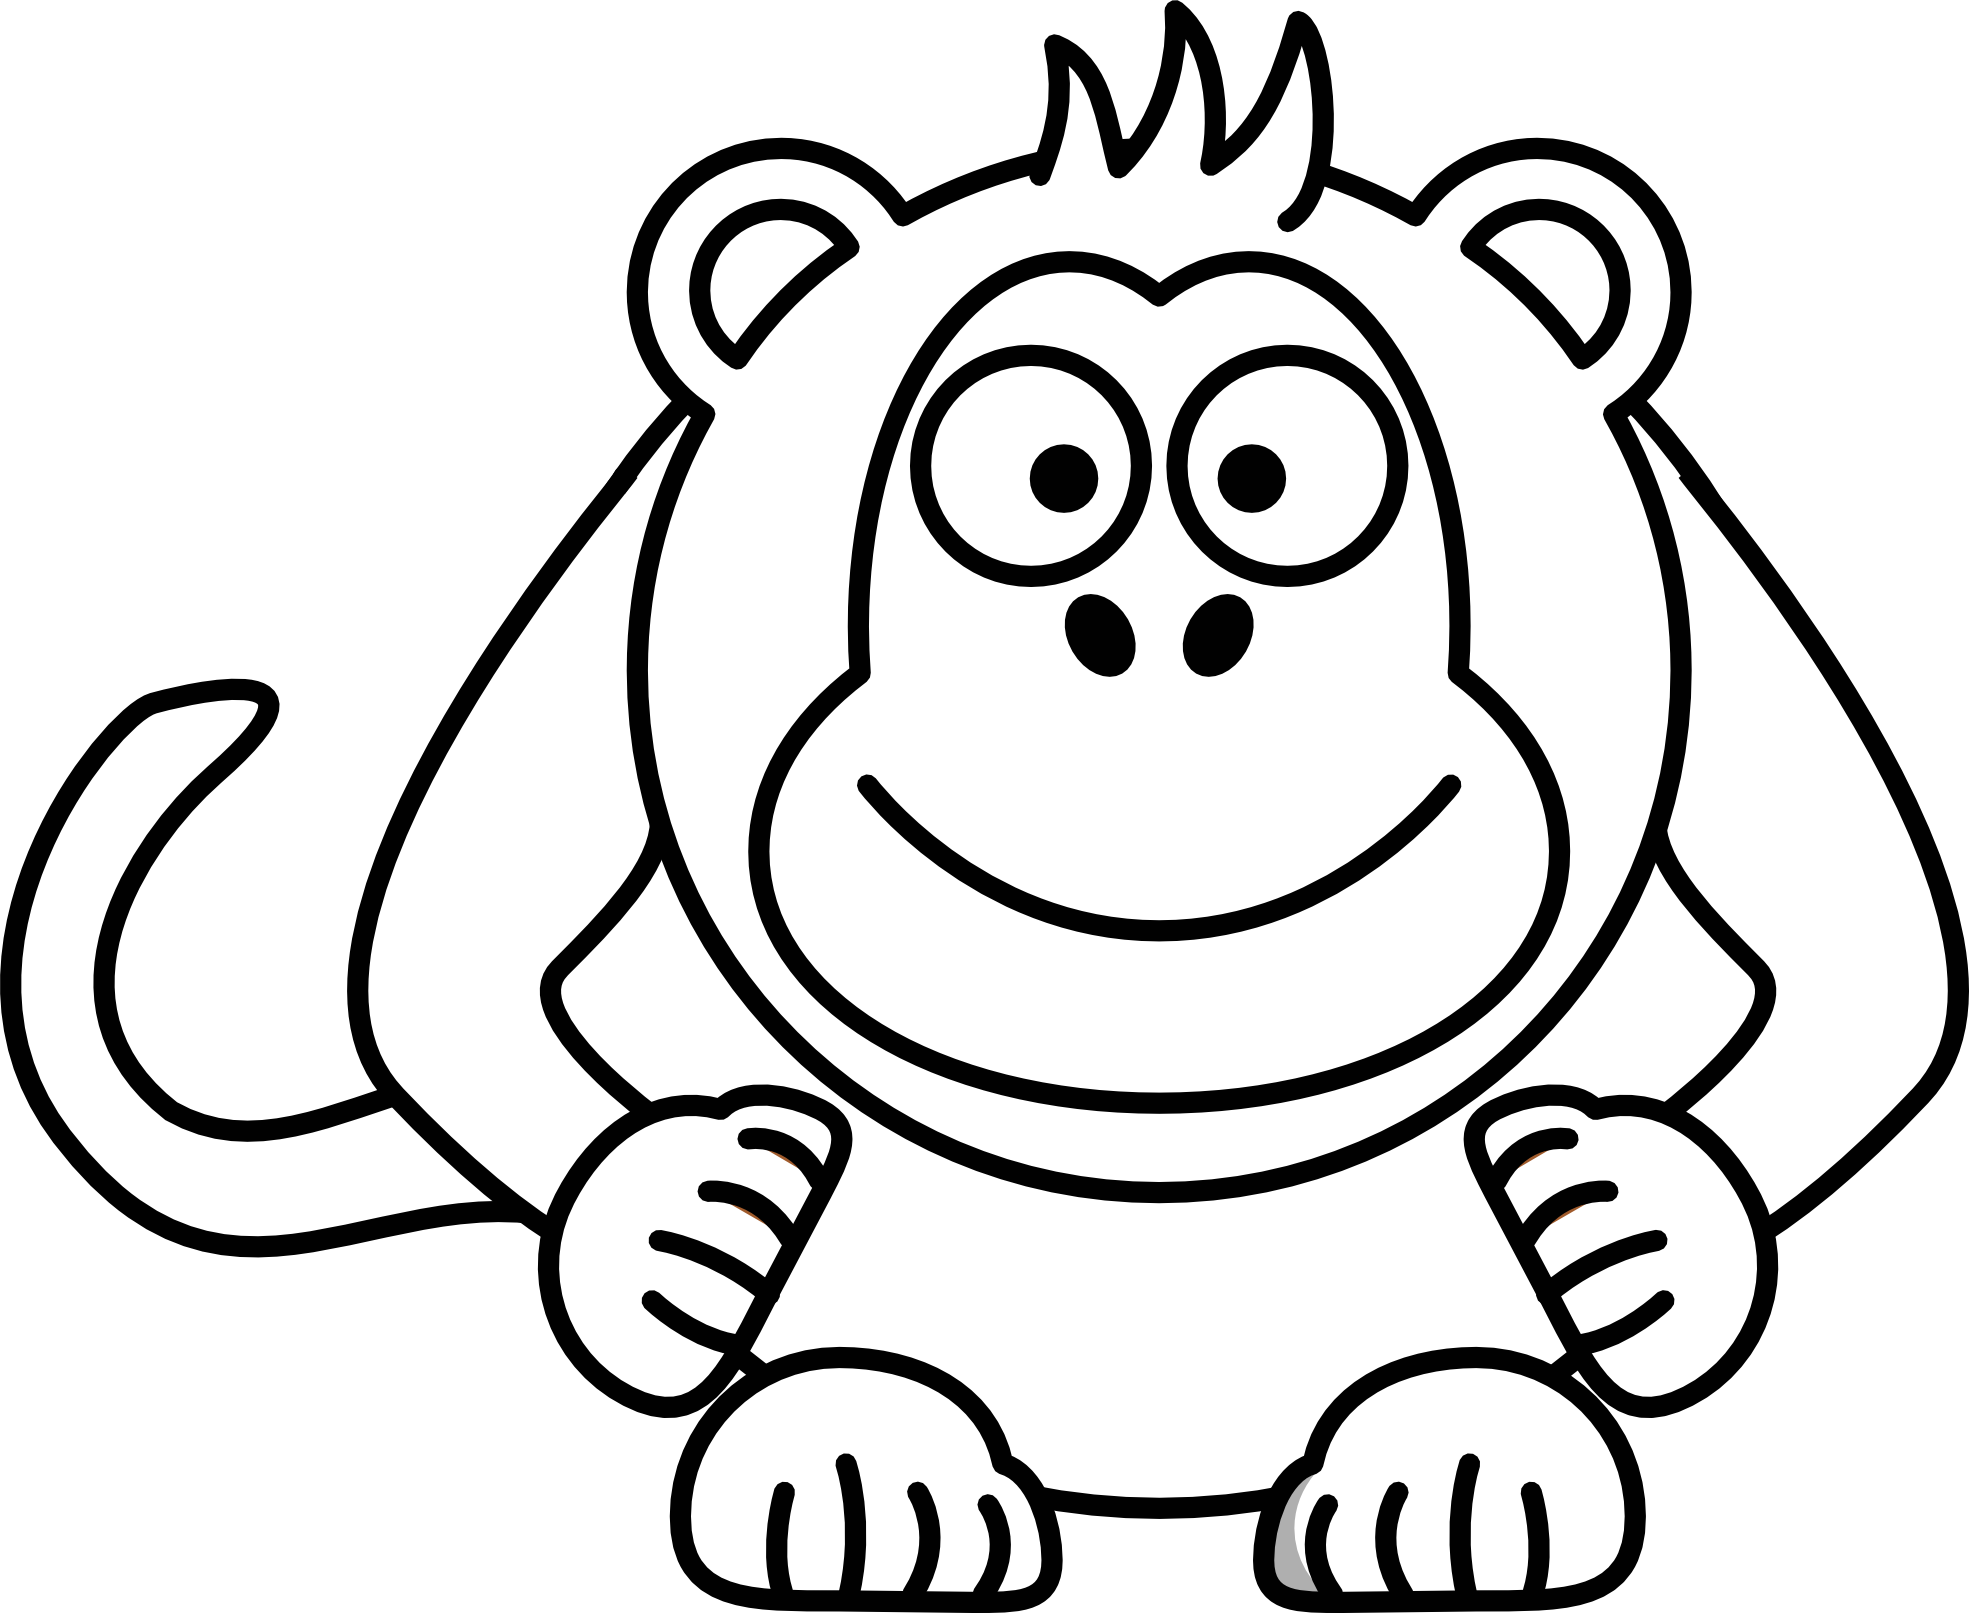 Line Drawing Monkey : Cartoon monkey drawings clipart best